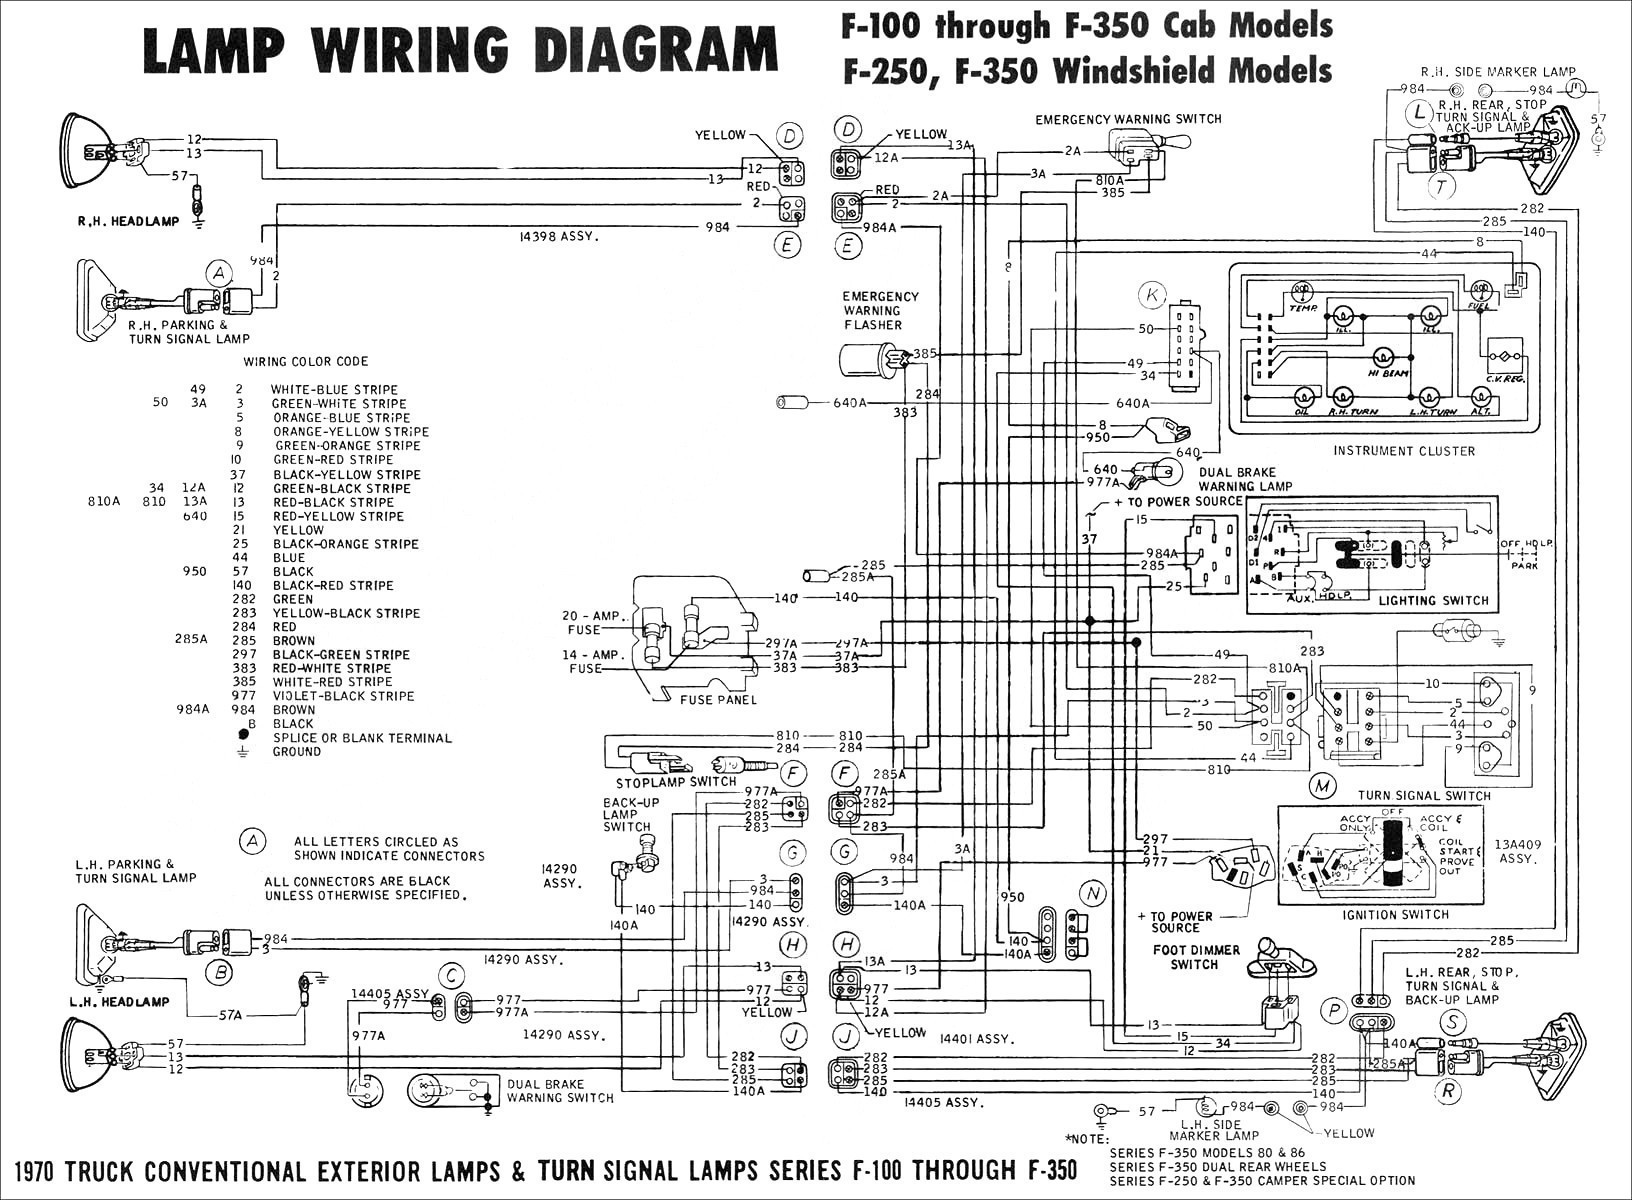 2004 ford F150 Parts Diagram 2005 ford Gt Archives Simple Wiring Diagram